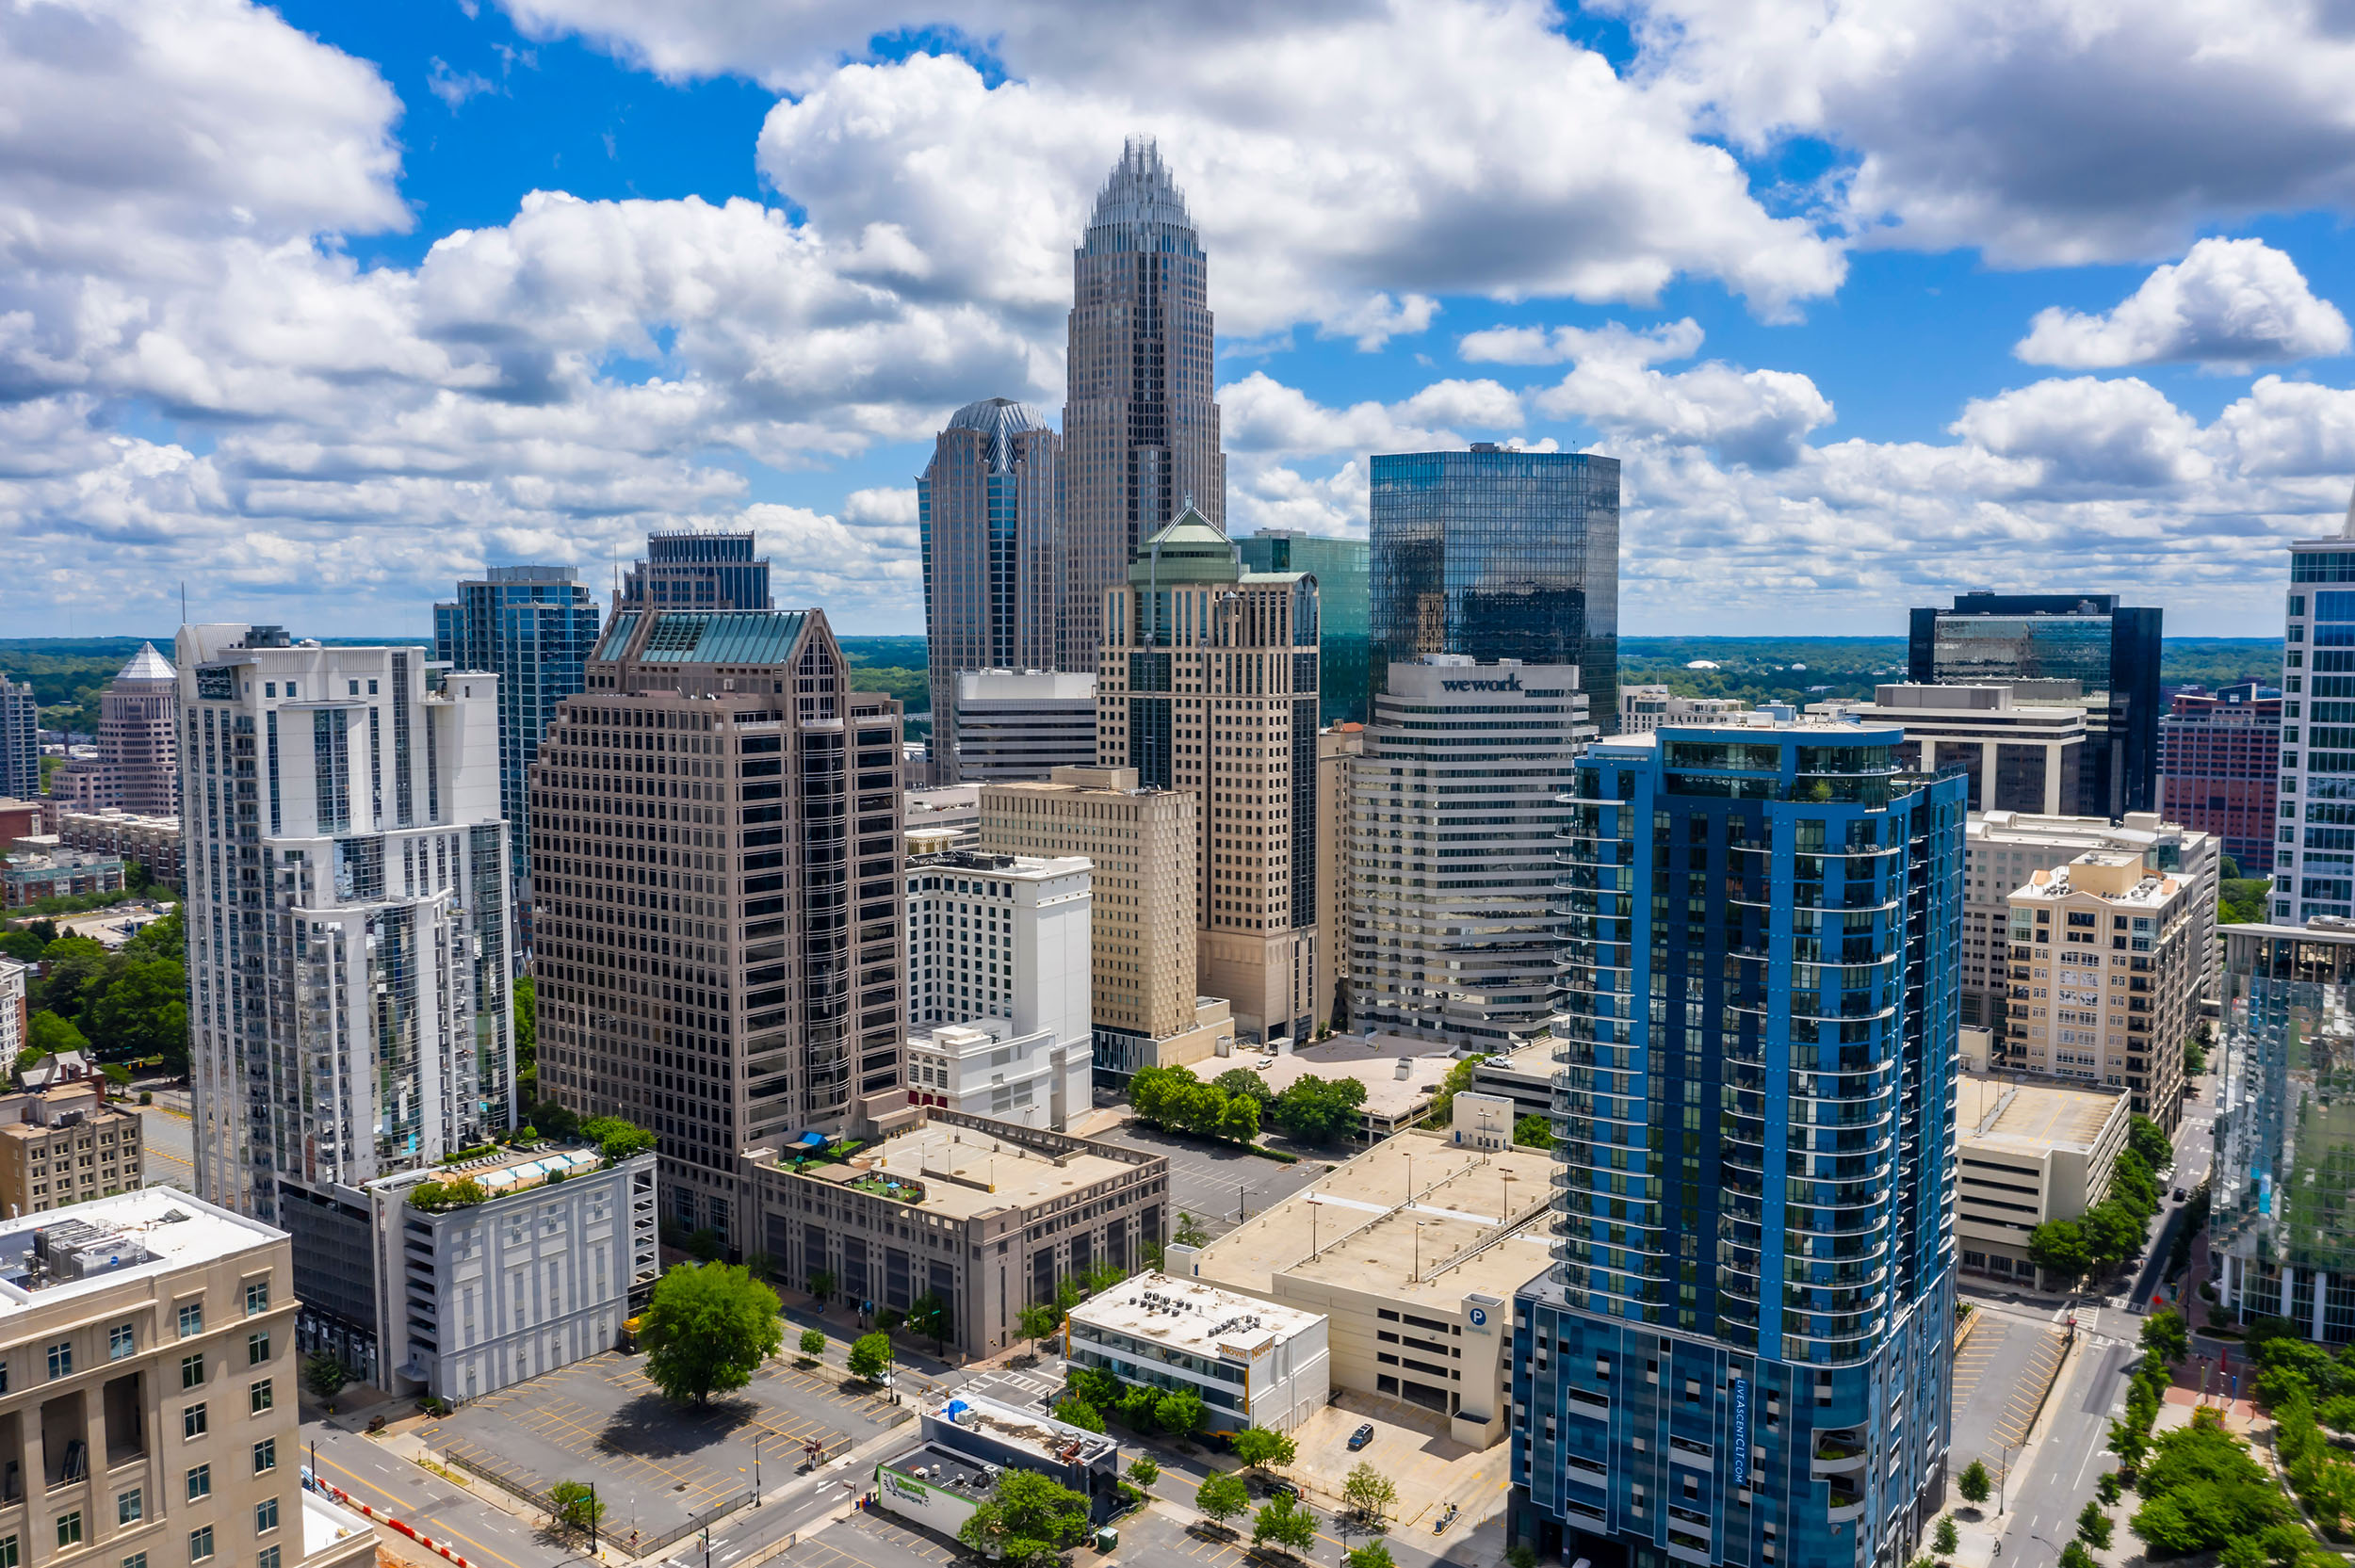 Aerial view of downtown Charlotte, North Carolina.